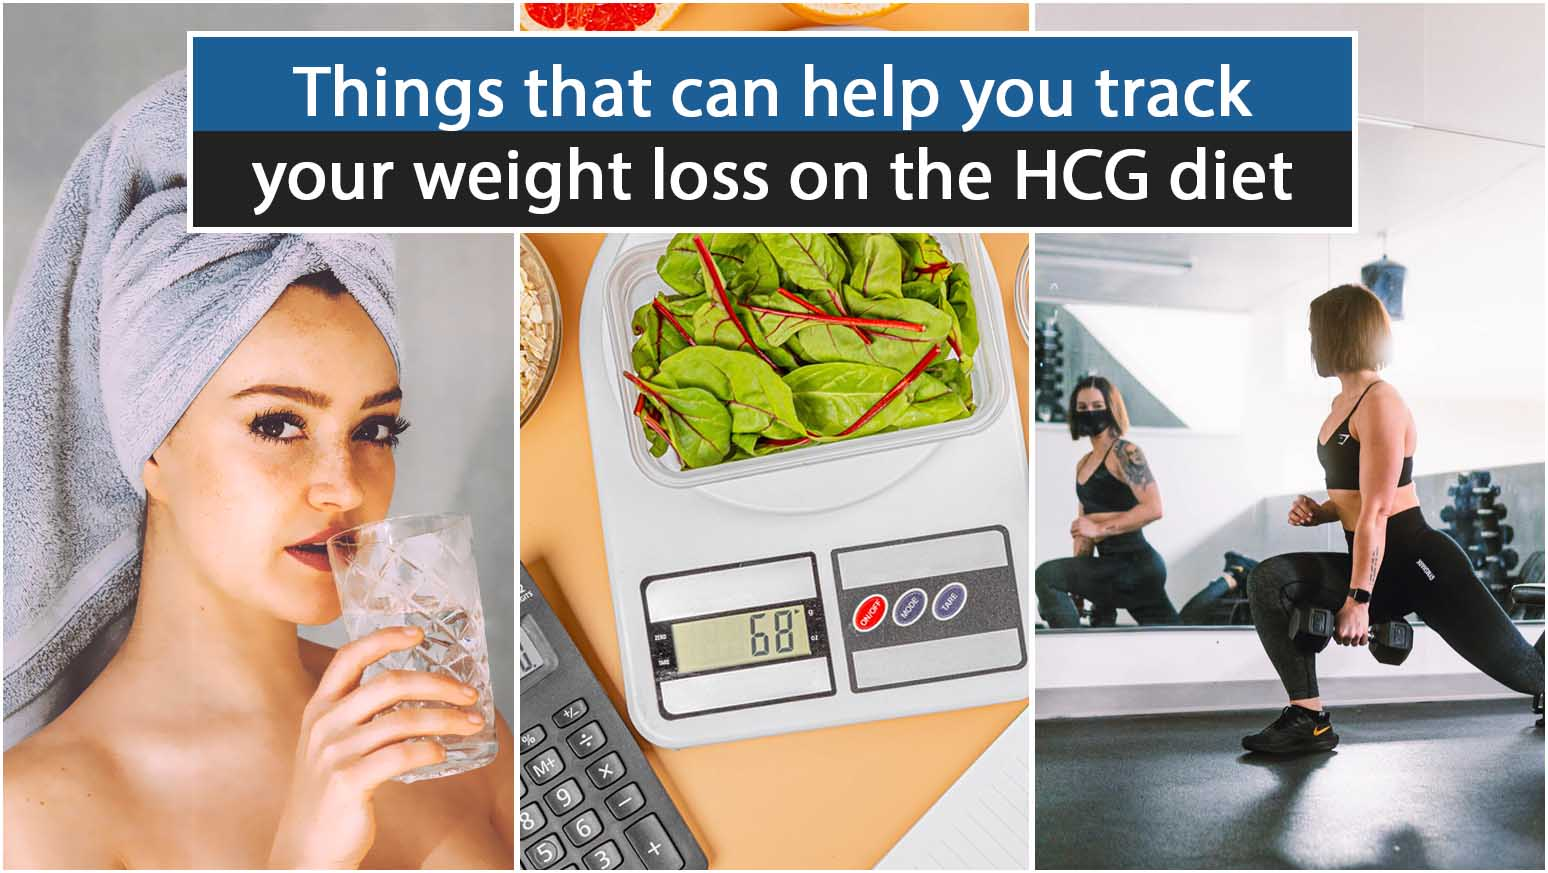 Things that can help you track your weight loss on the HCG diet